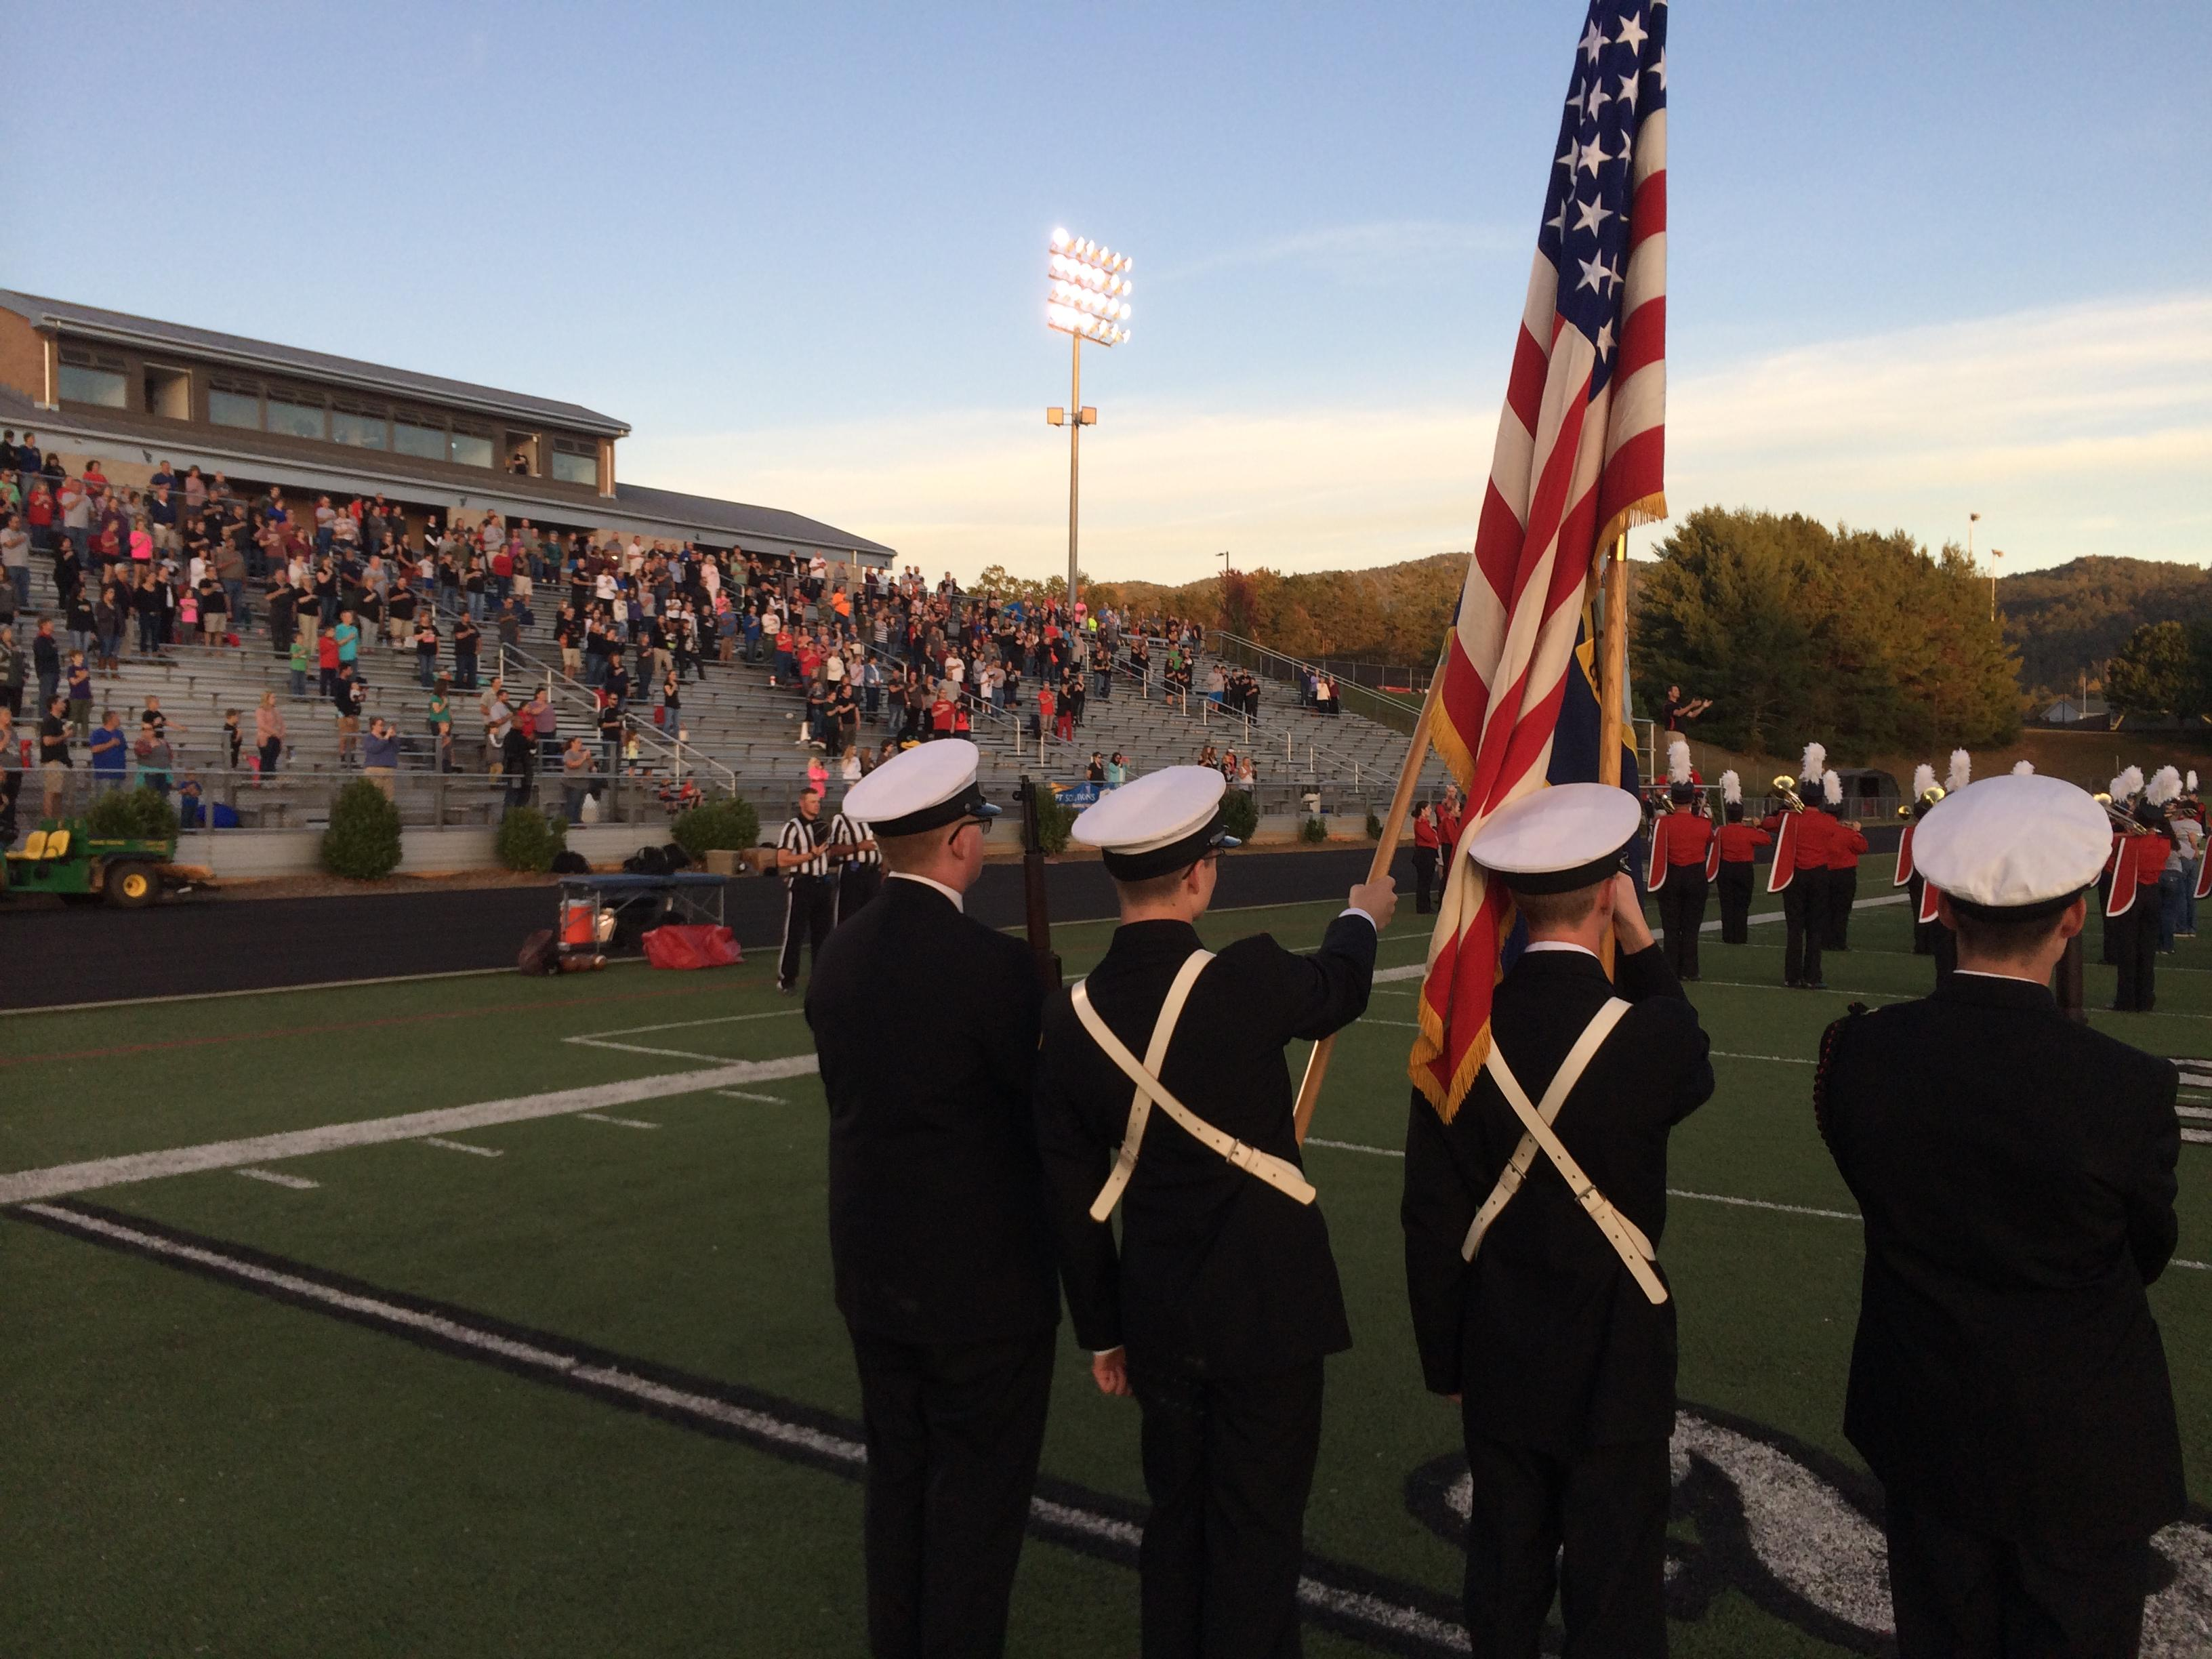 North Henderson vs North Buncombe, 10-06-2017 (Photo credit: WLOS Staff)